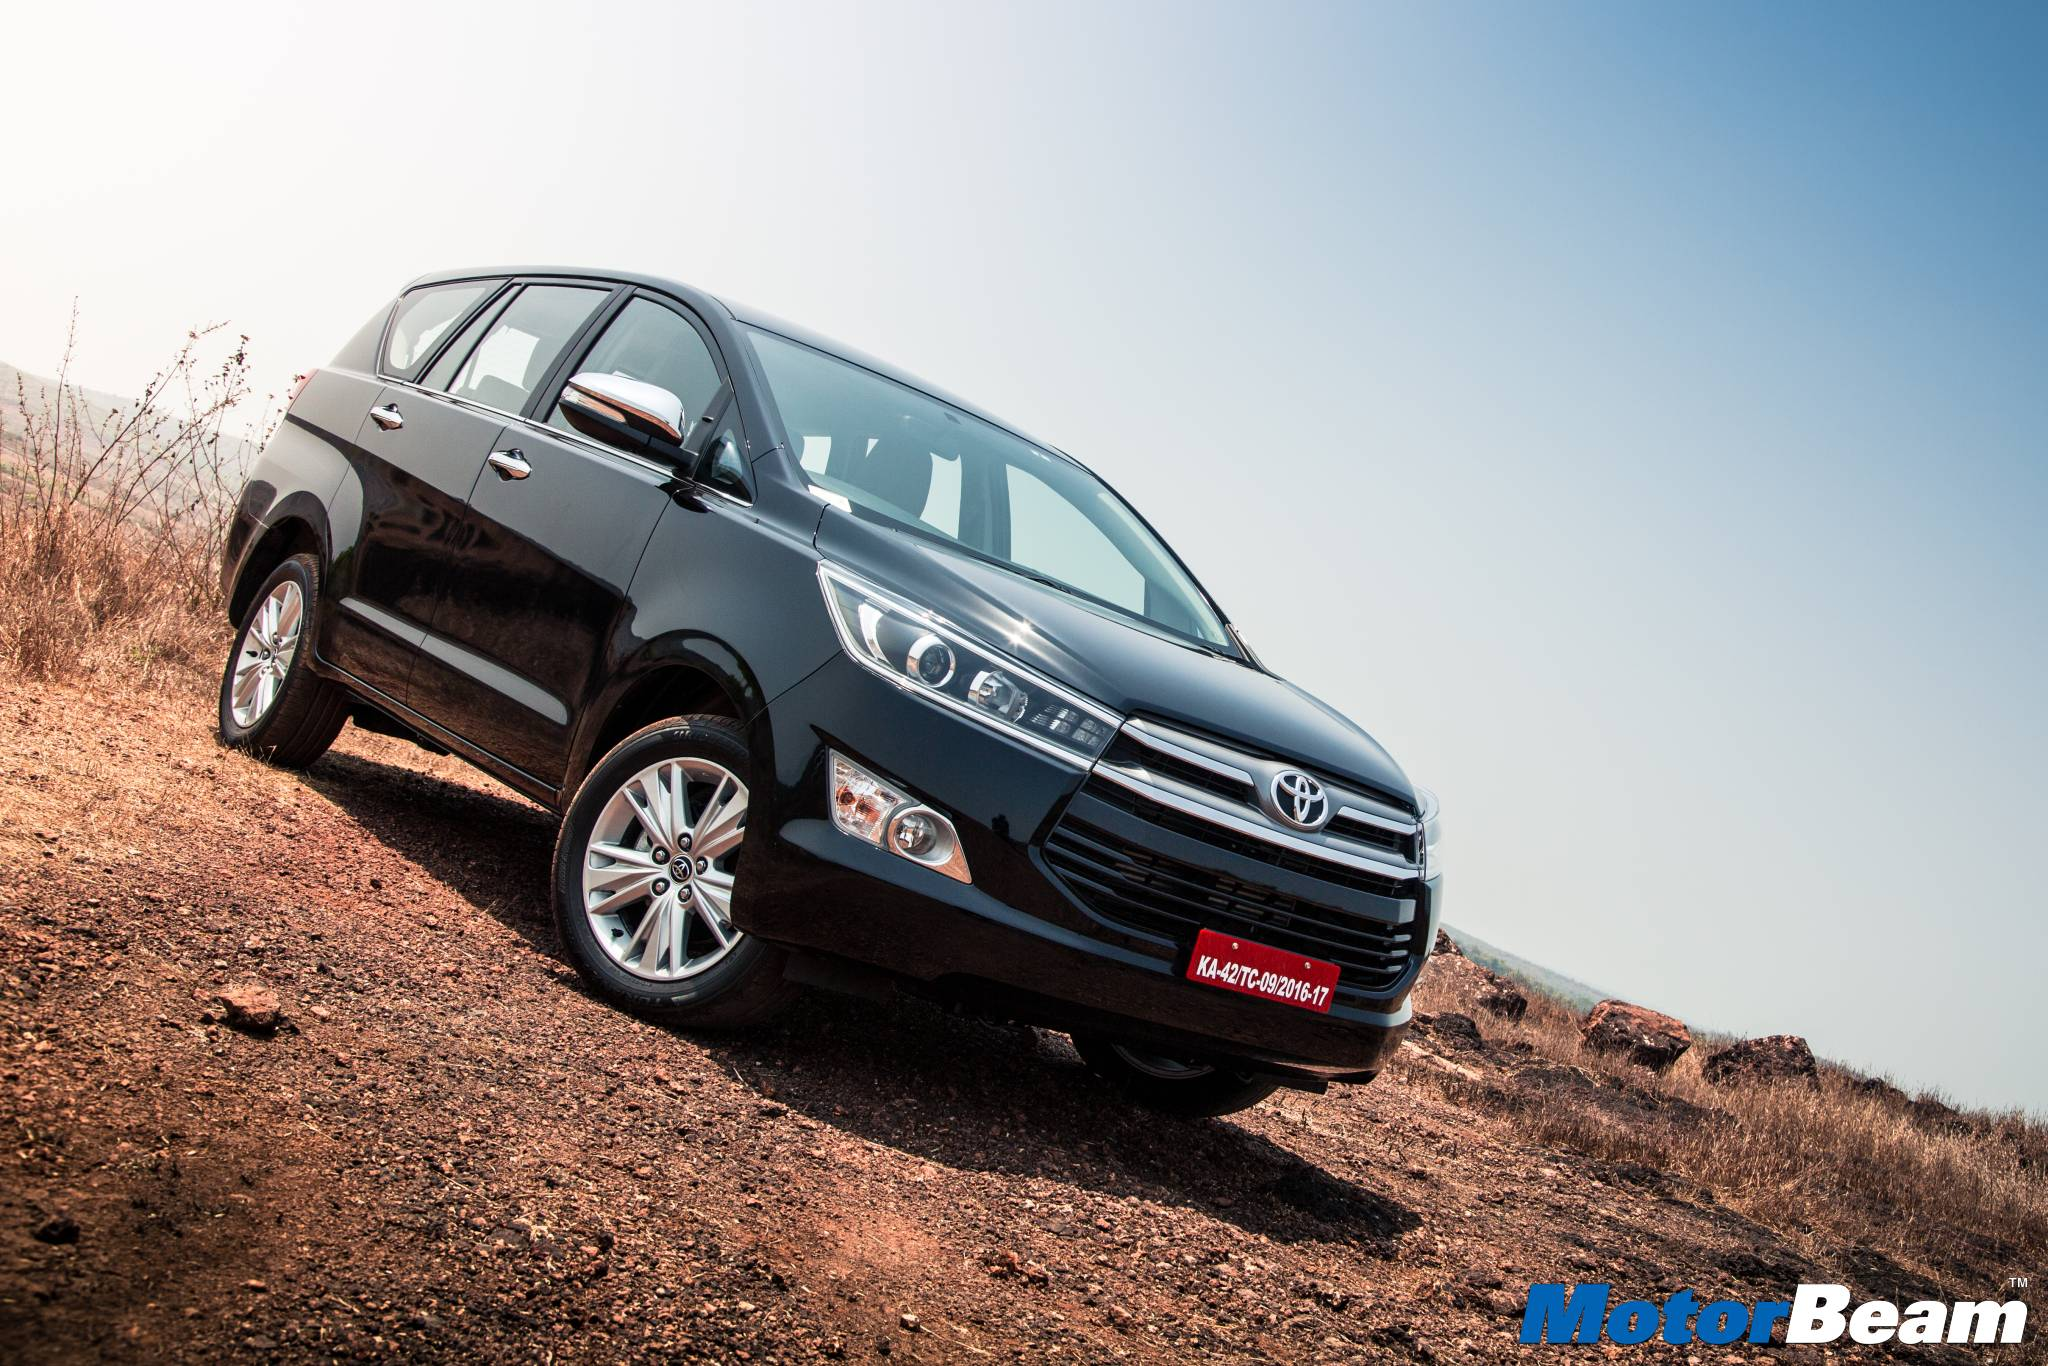 Toyota Innova Crysta Is Top Selling Car In India By Value Wiring Diagram Hyundai Santro Review